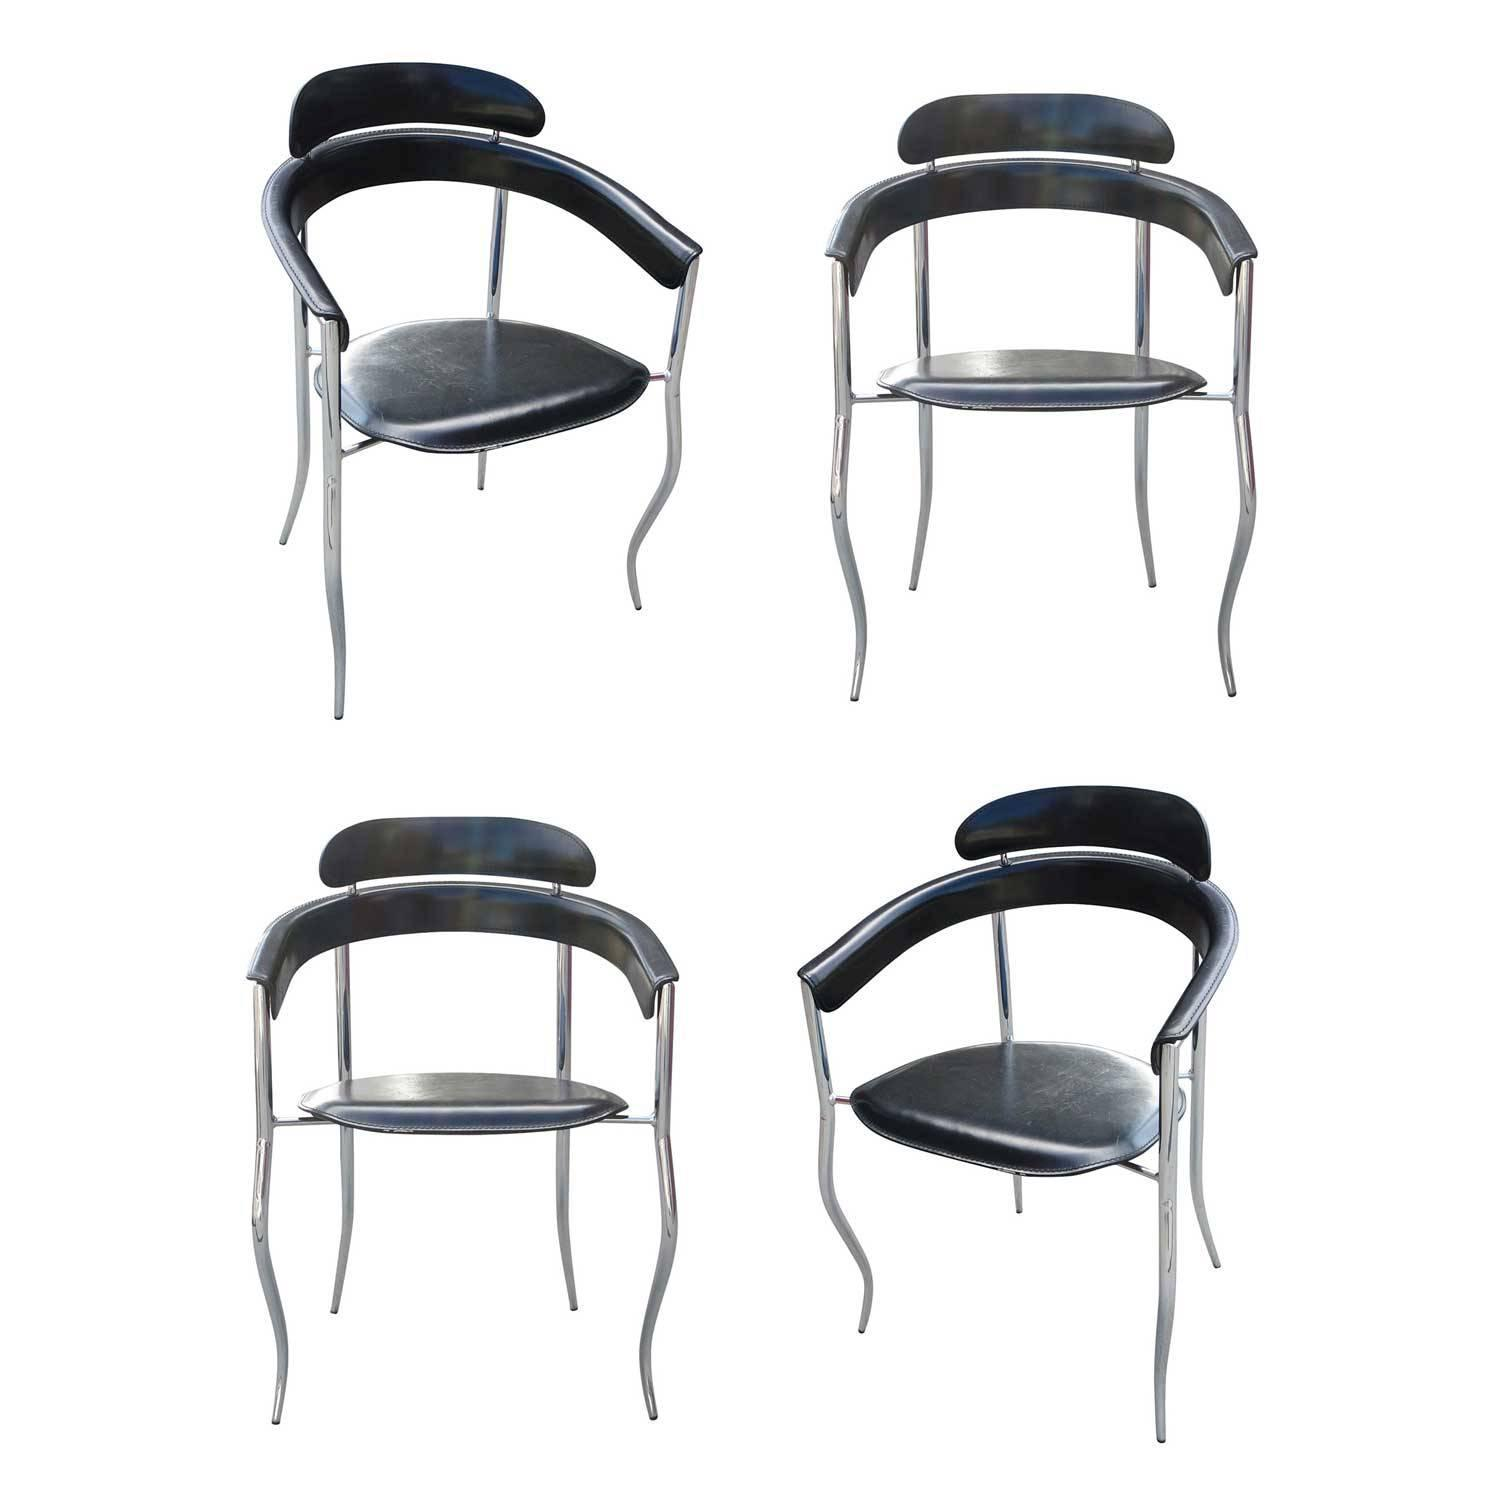 Beau Set Of Four Stiletto Architectural Chairs By Arrben, Italy